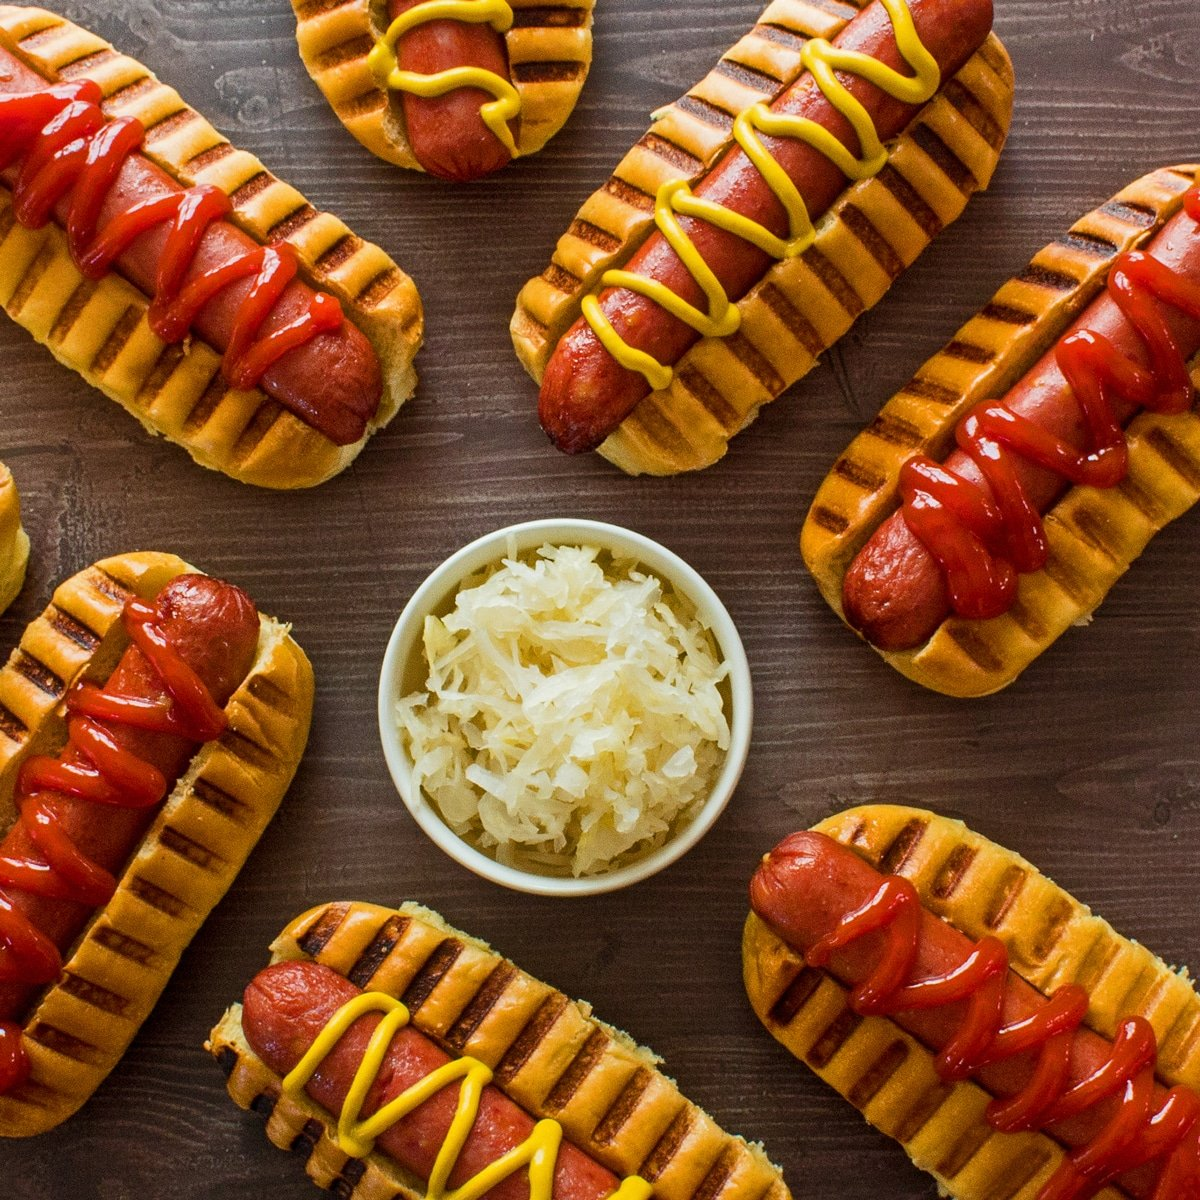 Overhead square image at top showing air fryer hot dogs in buns with ketchup and mustard on brown background with a white bowl of sauerkraut near the center.